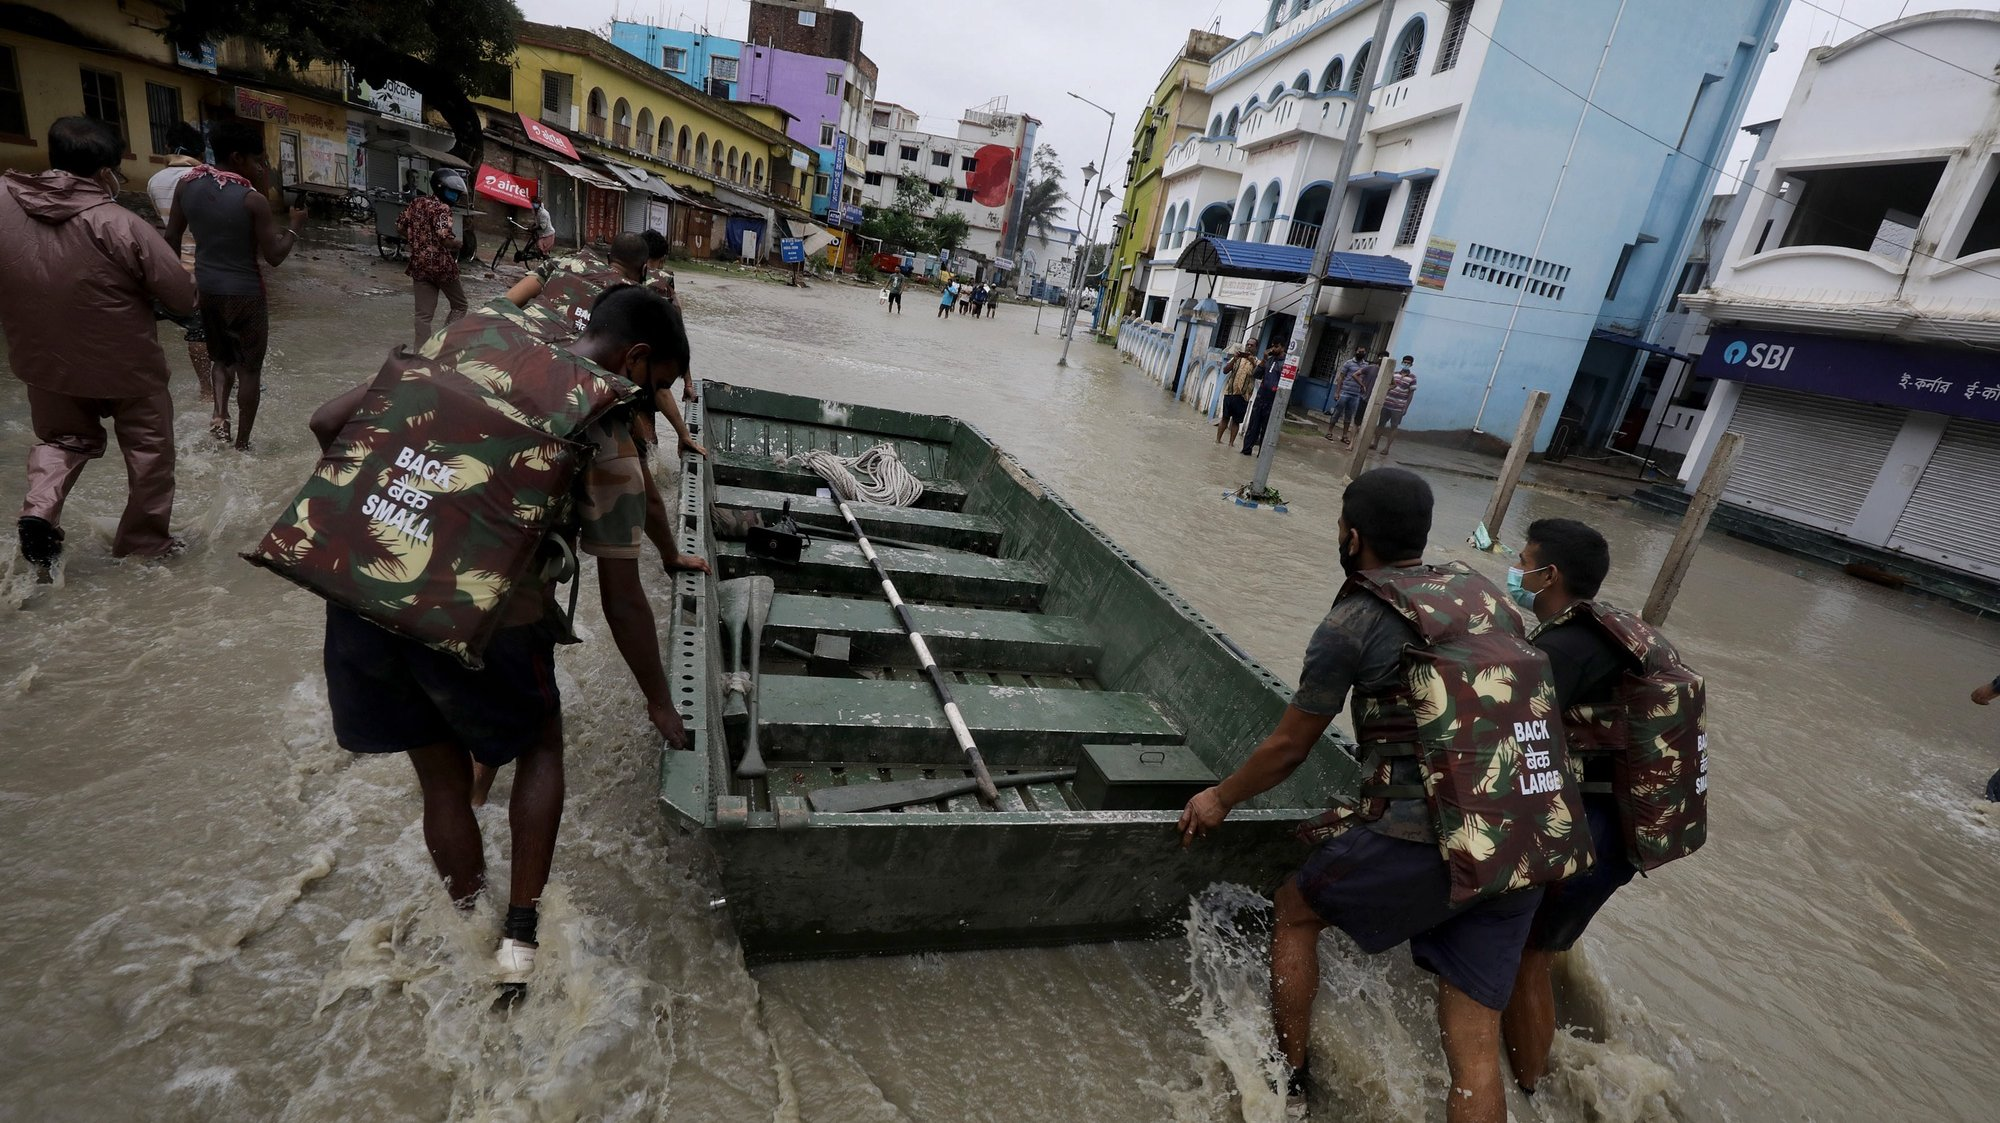 epa09228341 Indian Army personel carry a boat to rescue people amid floods as Cyclone Yaas makes landfall in Digha, near the Bay of Bengal, south of Kolkata, India, 26 May 2021. The Odisha and Bengal governments started the evacuation of at-risk areas, as Cyclone Yaas hits the eastern coast of India.  EPA/PIYAL ADHIKARY